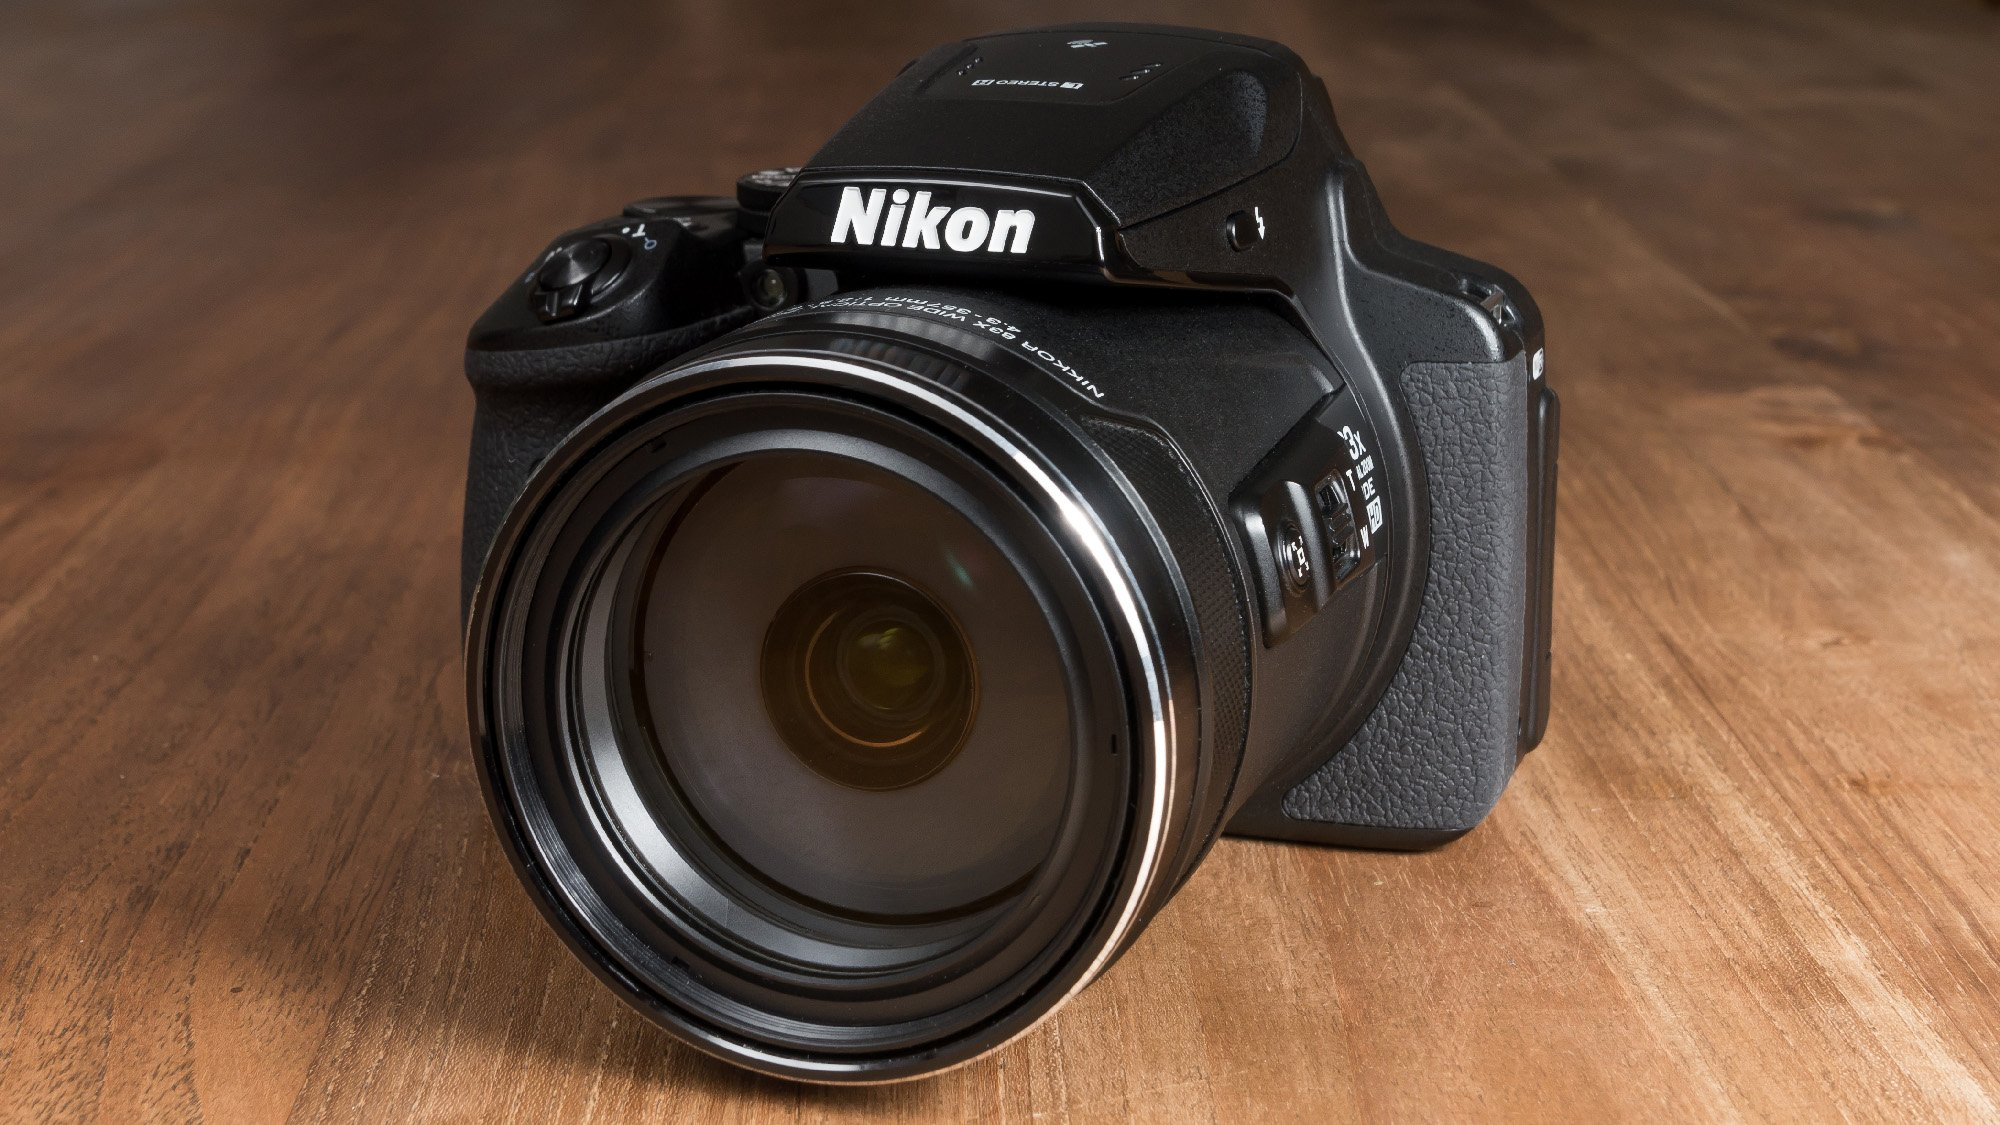 nikon coolpix p900 review the camera that 39 s all zoom. Black Bedroom Furniture Sets. Home Design Ideas